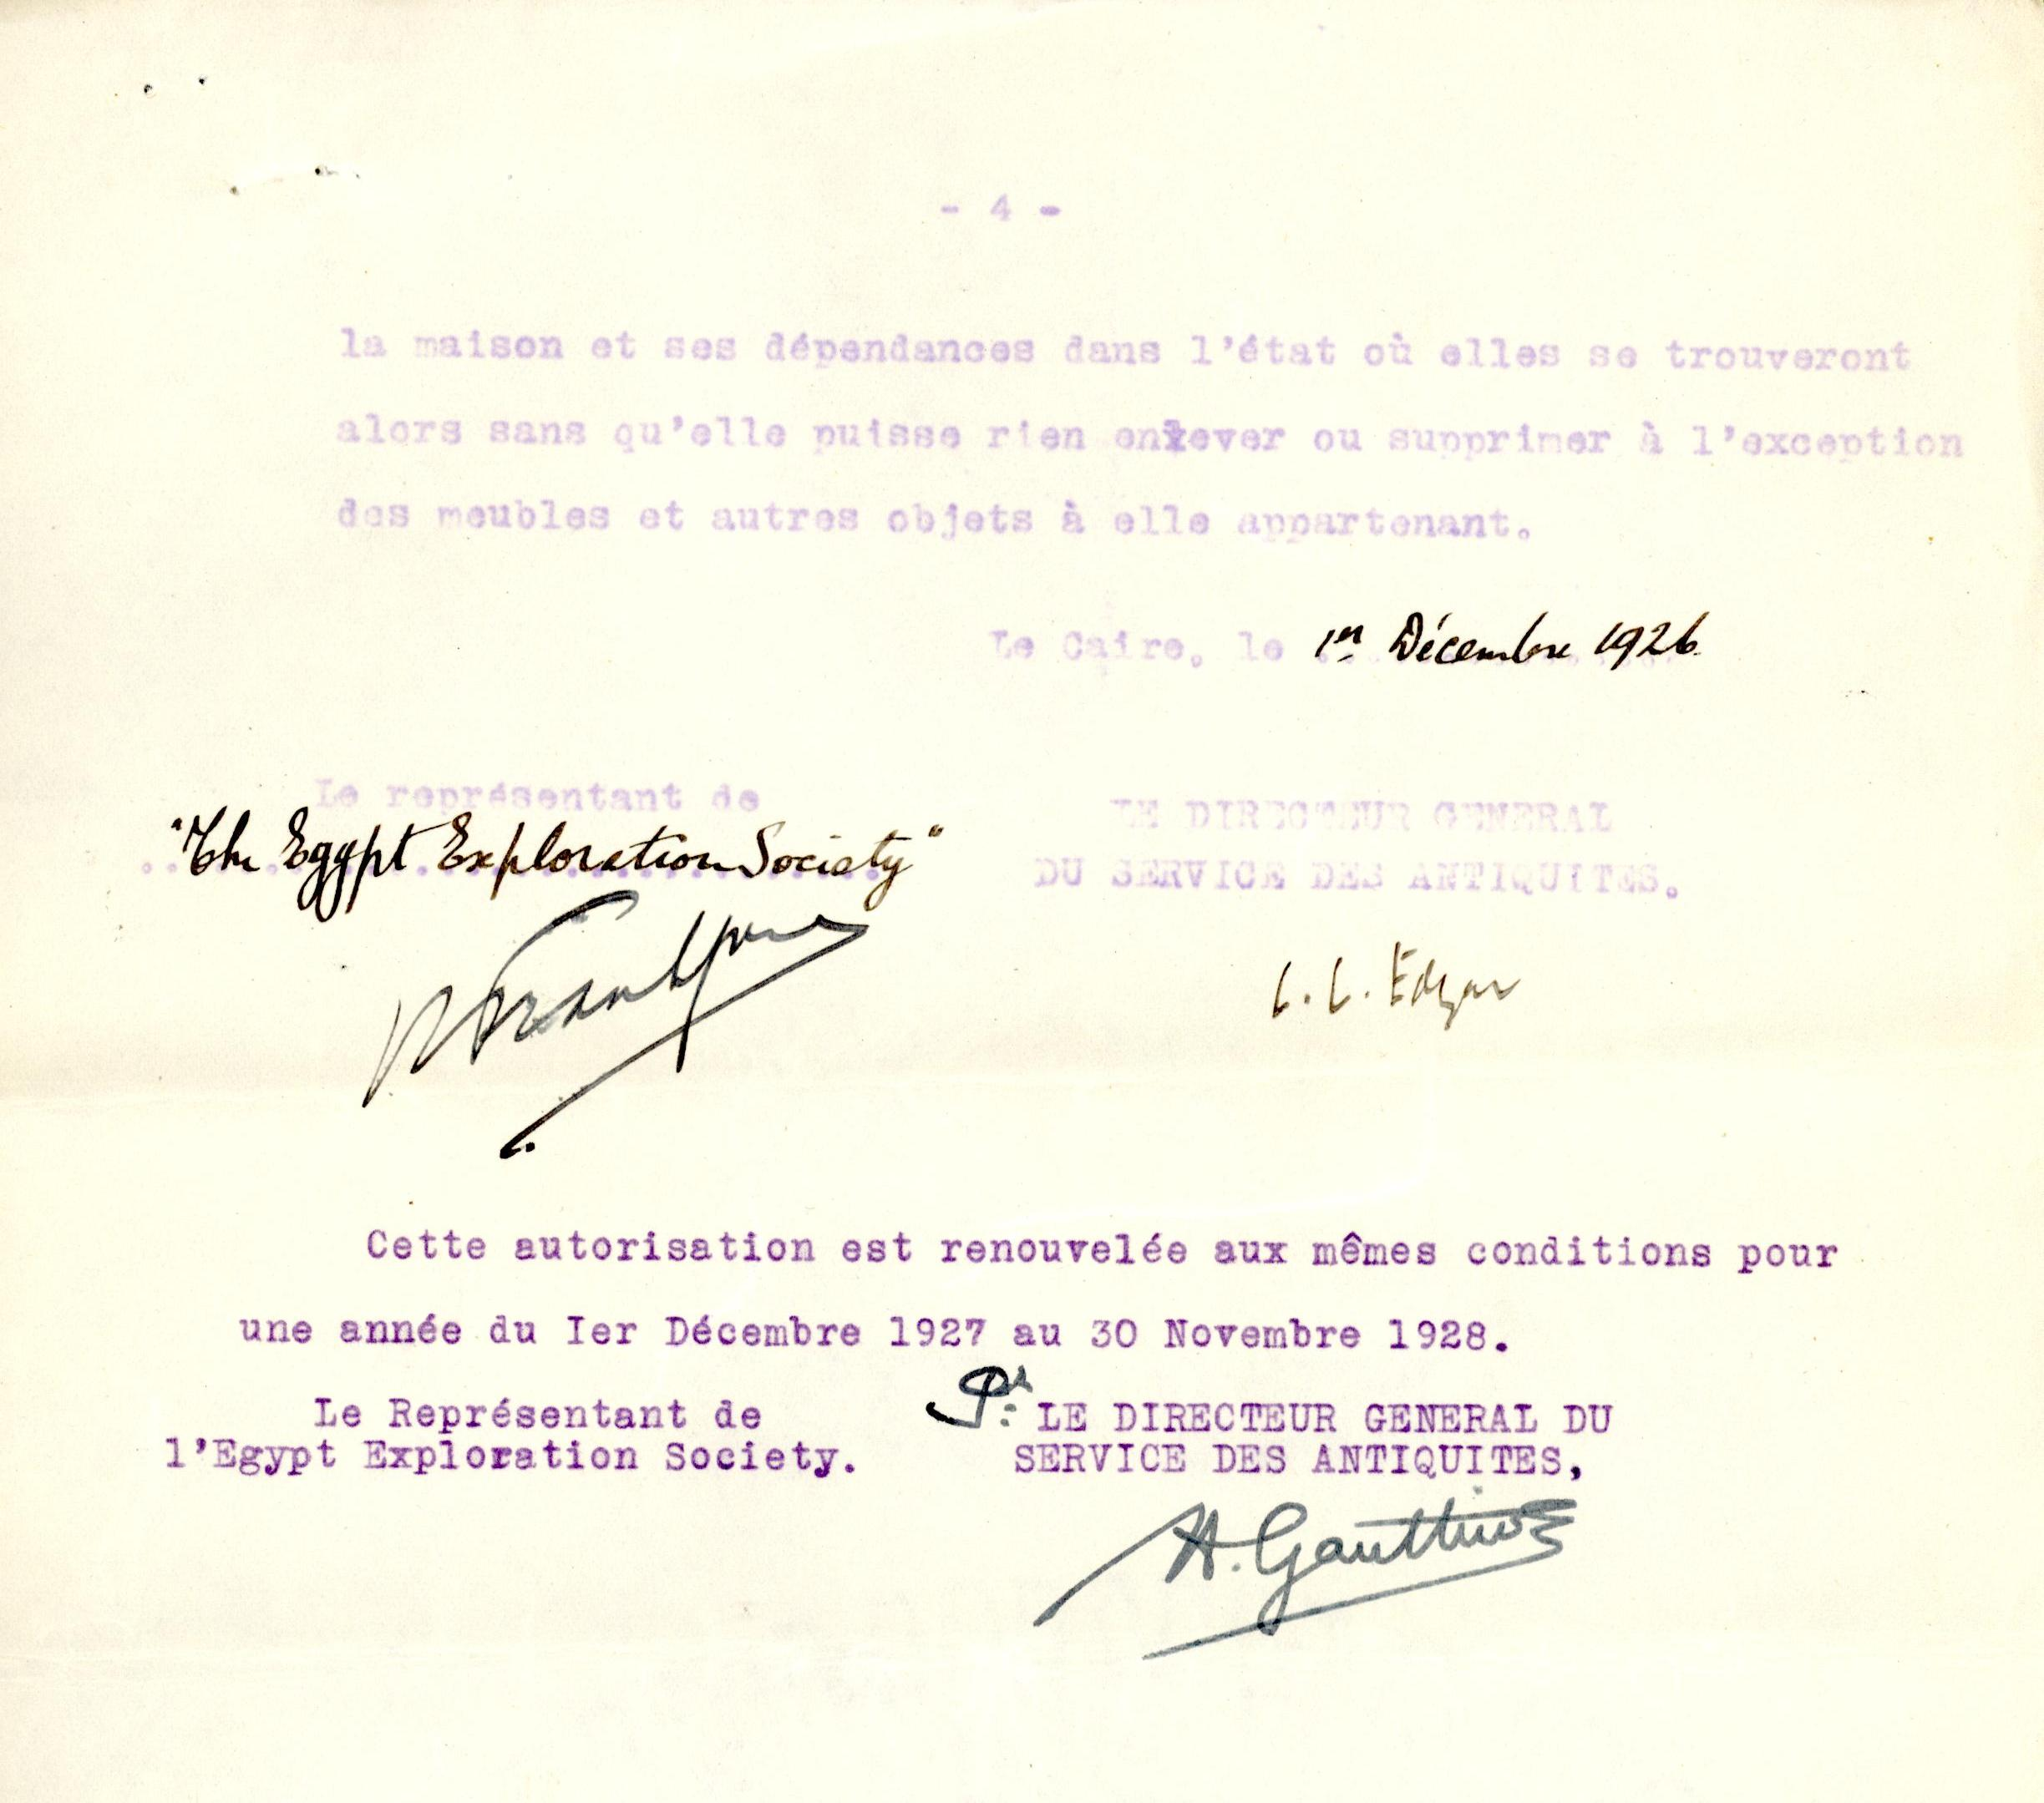 1926-39 correspondence with Antiquities Service DIST.50.10d